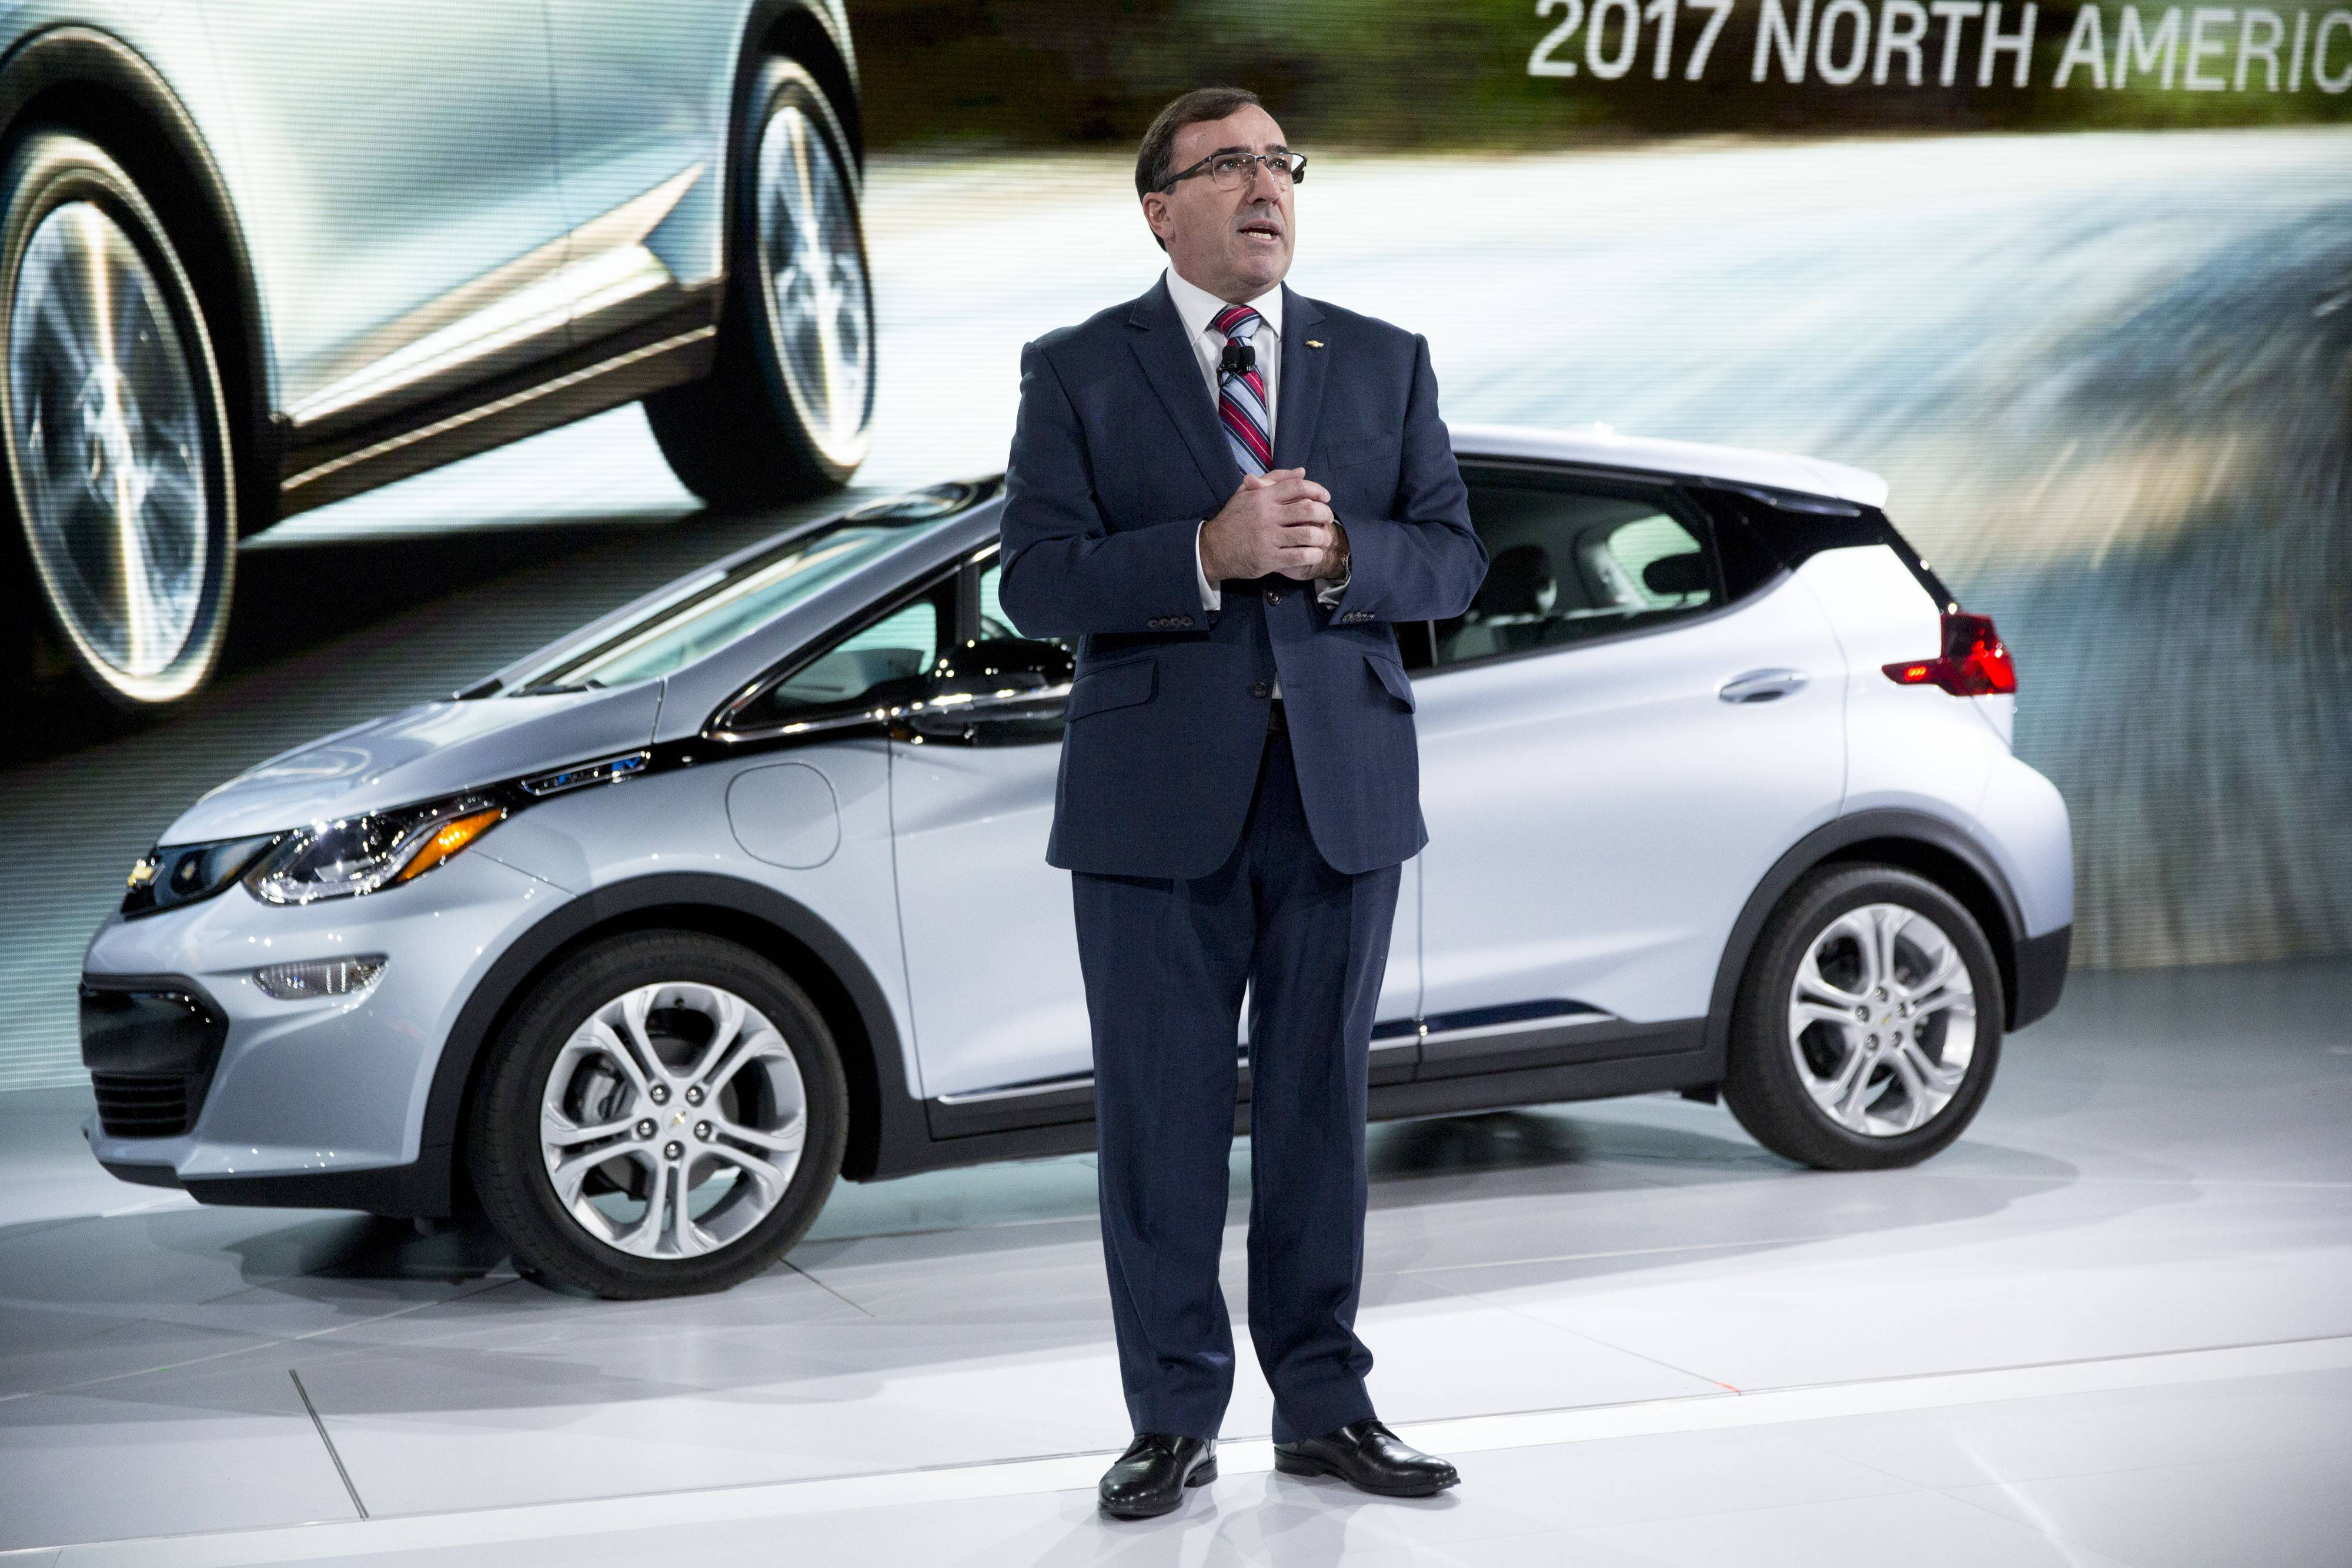 Alan Batey, president of General Motor Co. North America, speaks in front of a Chevrolet Bolt EV vehicle during the 2017 North American International Auto Show in Detroit this week.